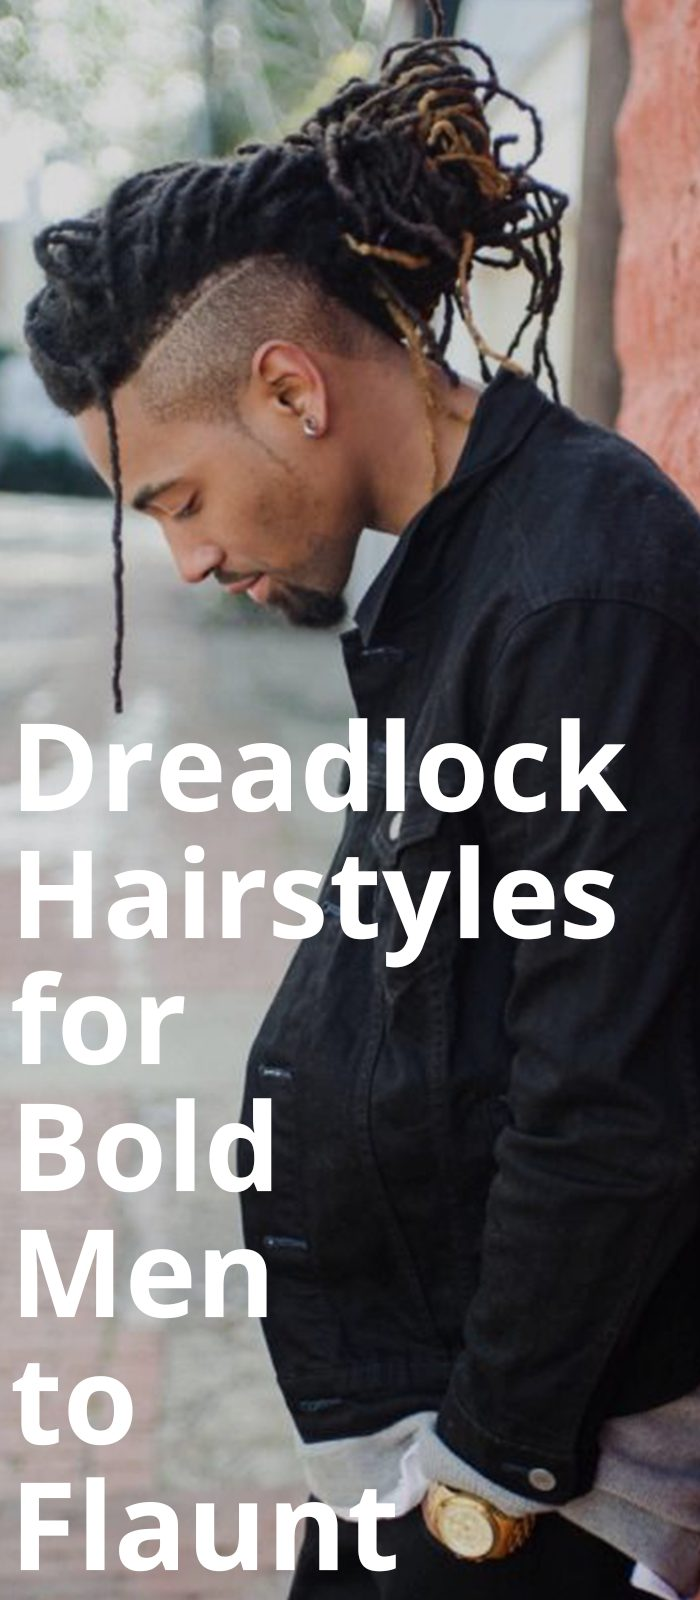 Dreadlock Hairstyles for Bold Men to Flaunt